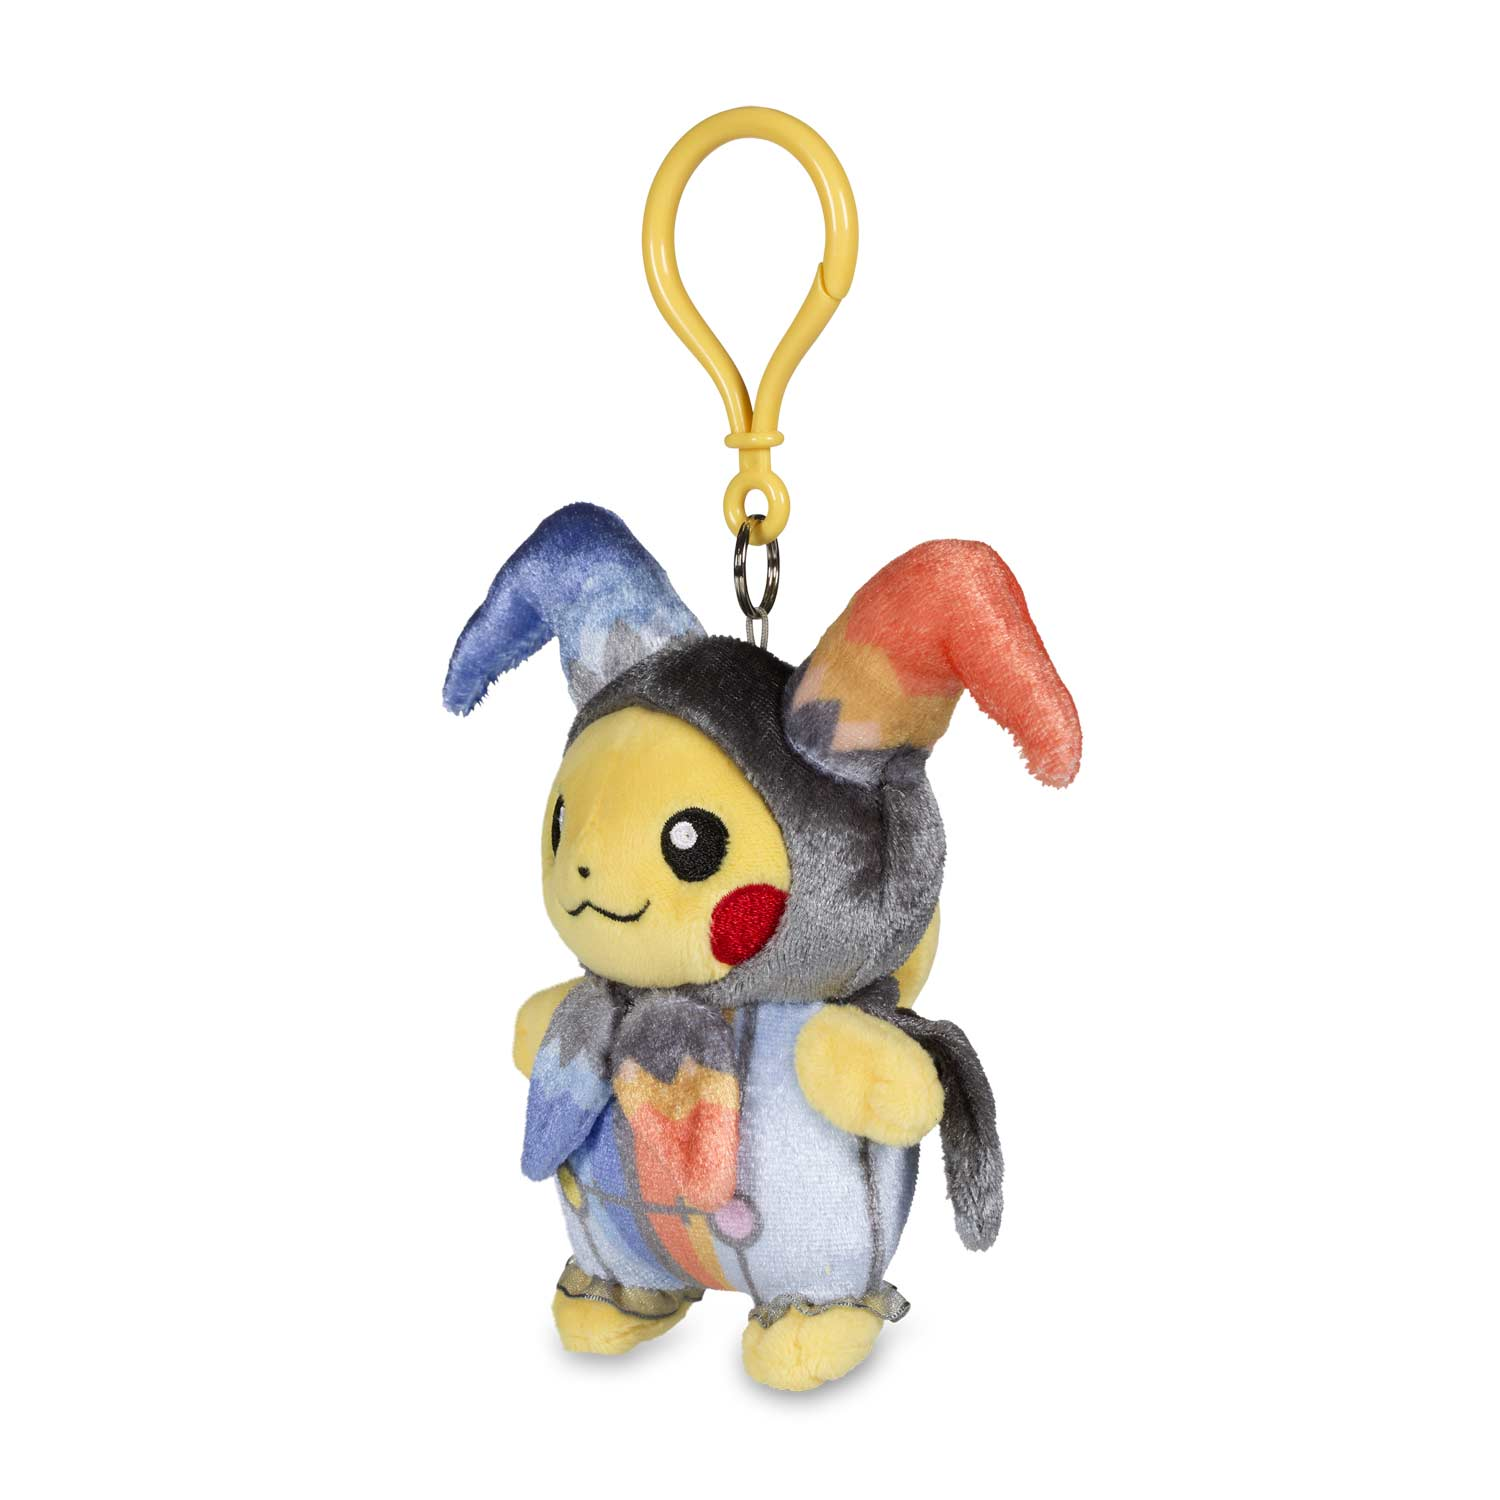 pikachu halloween circus plush keychain | pokémon center original